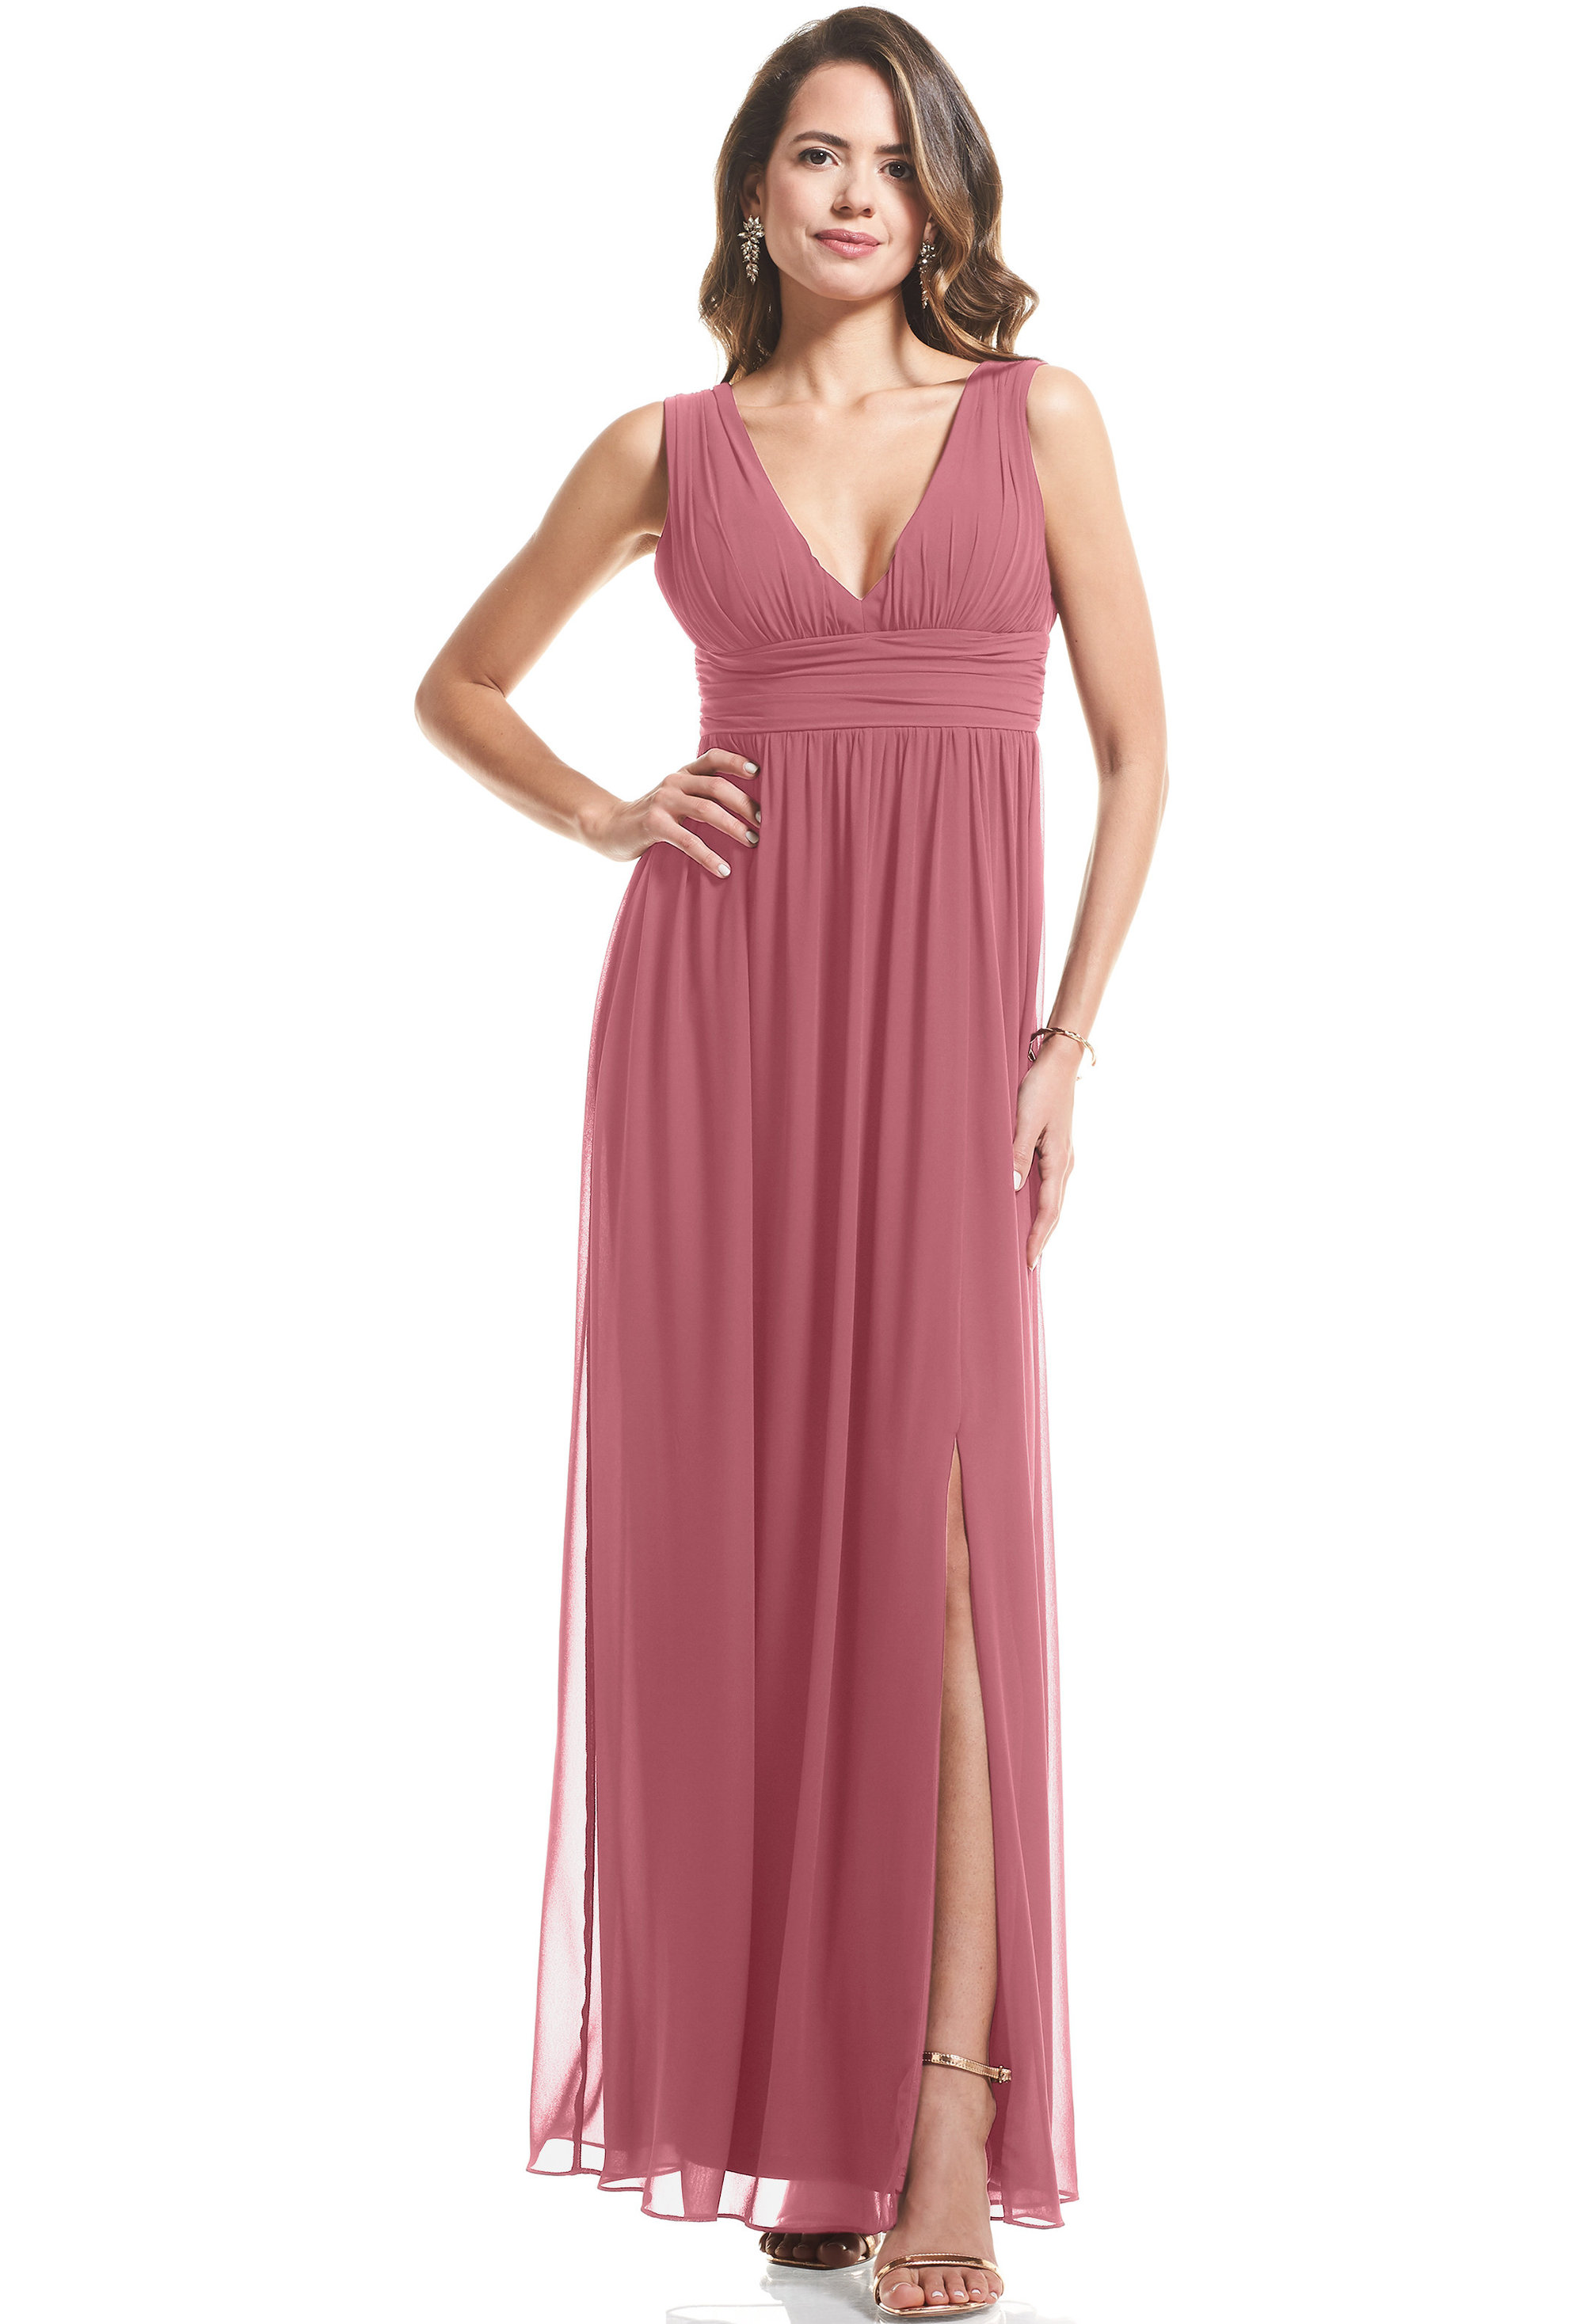 Bill Levkoff ROSEWOOD Chiffon V-neck A-Line gown, $89.00 Front